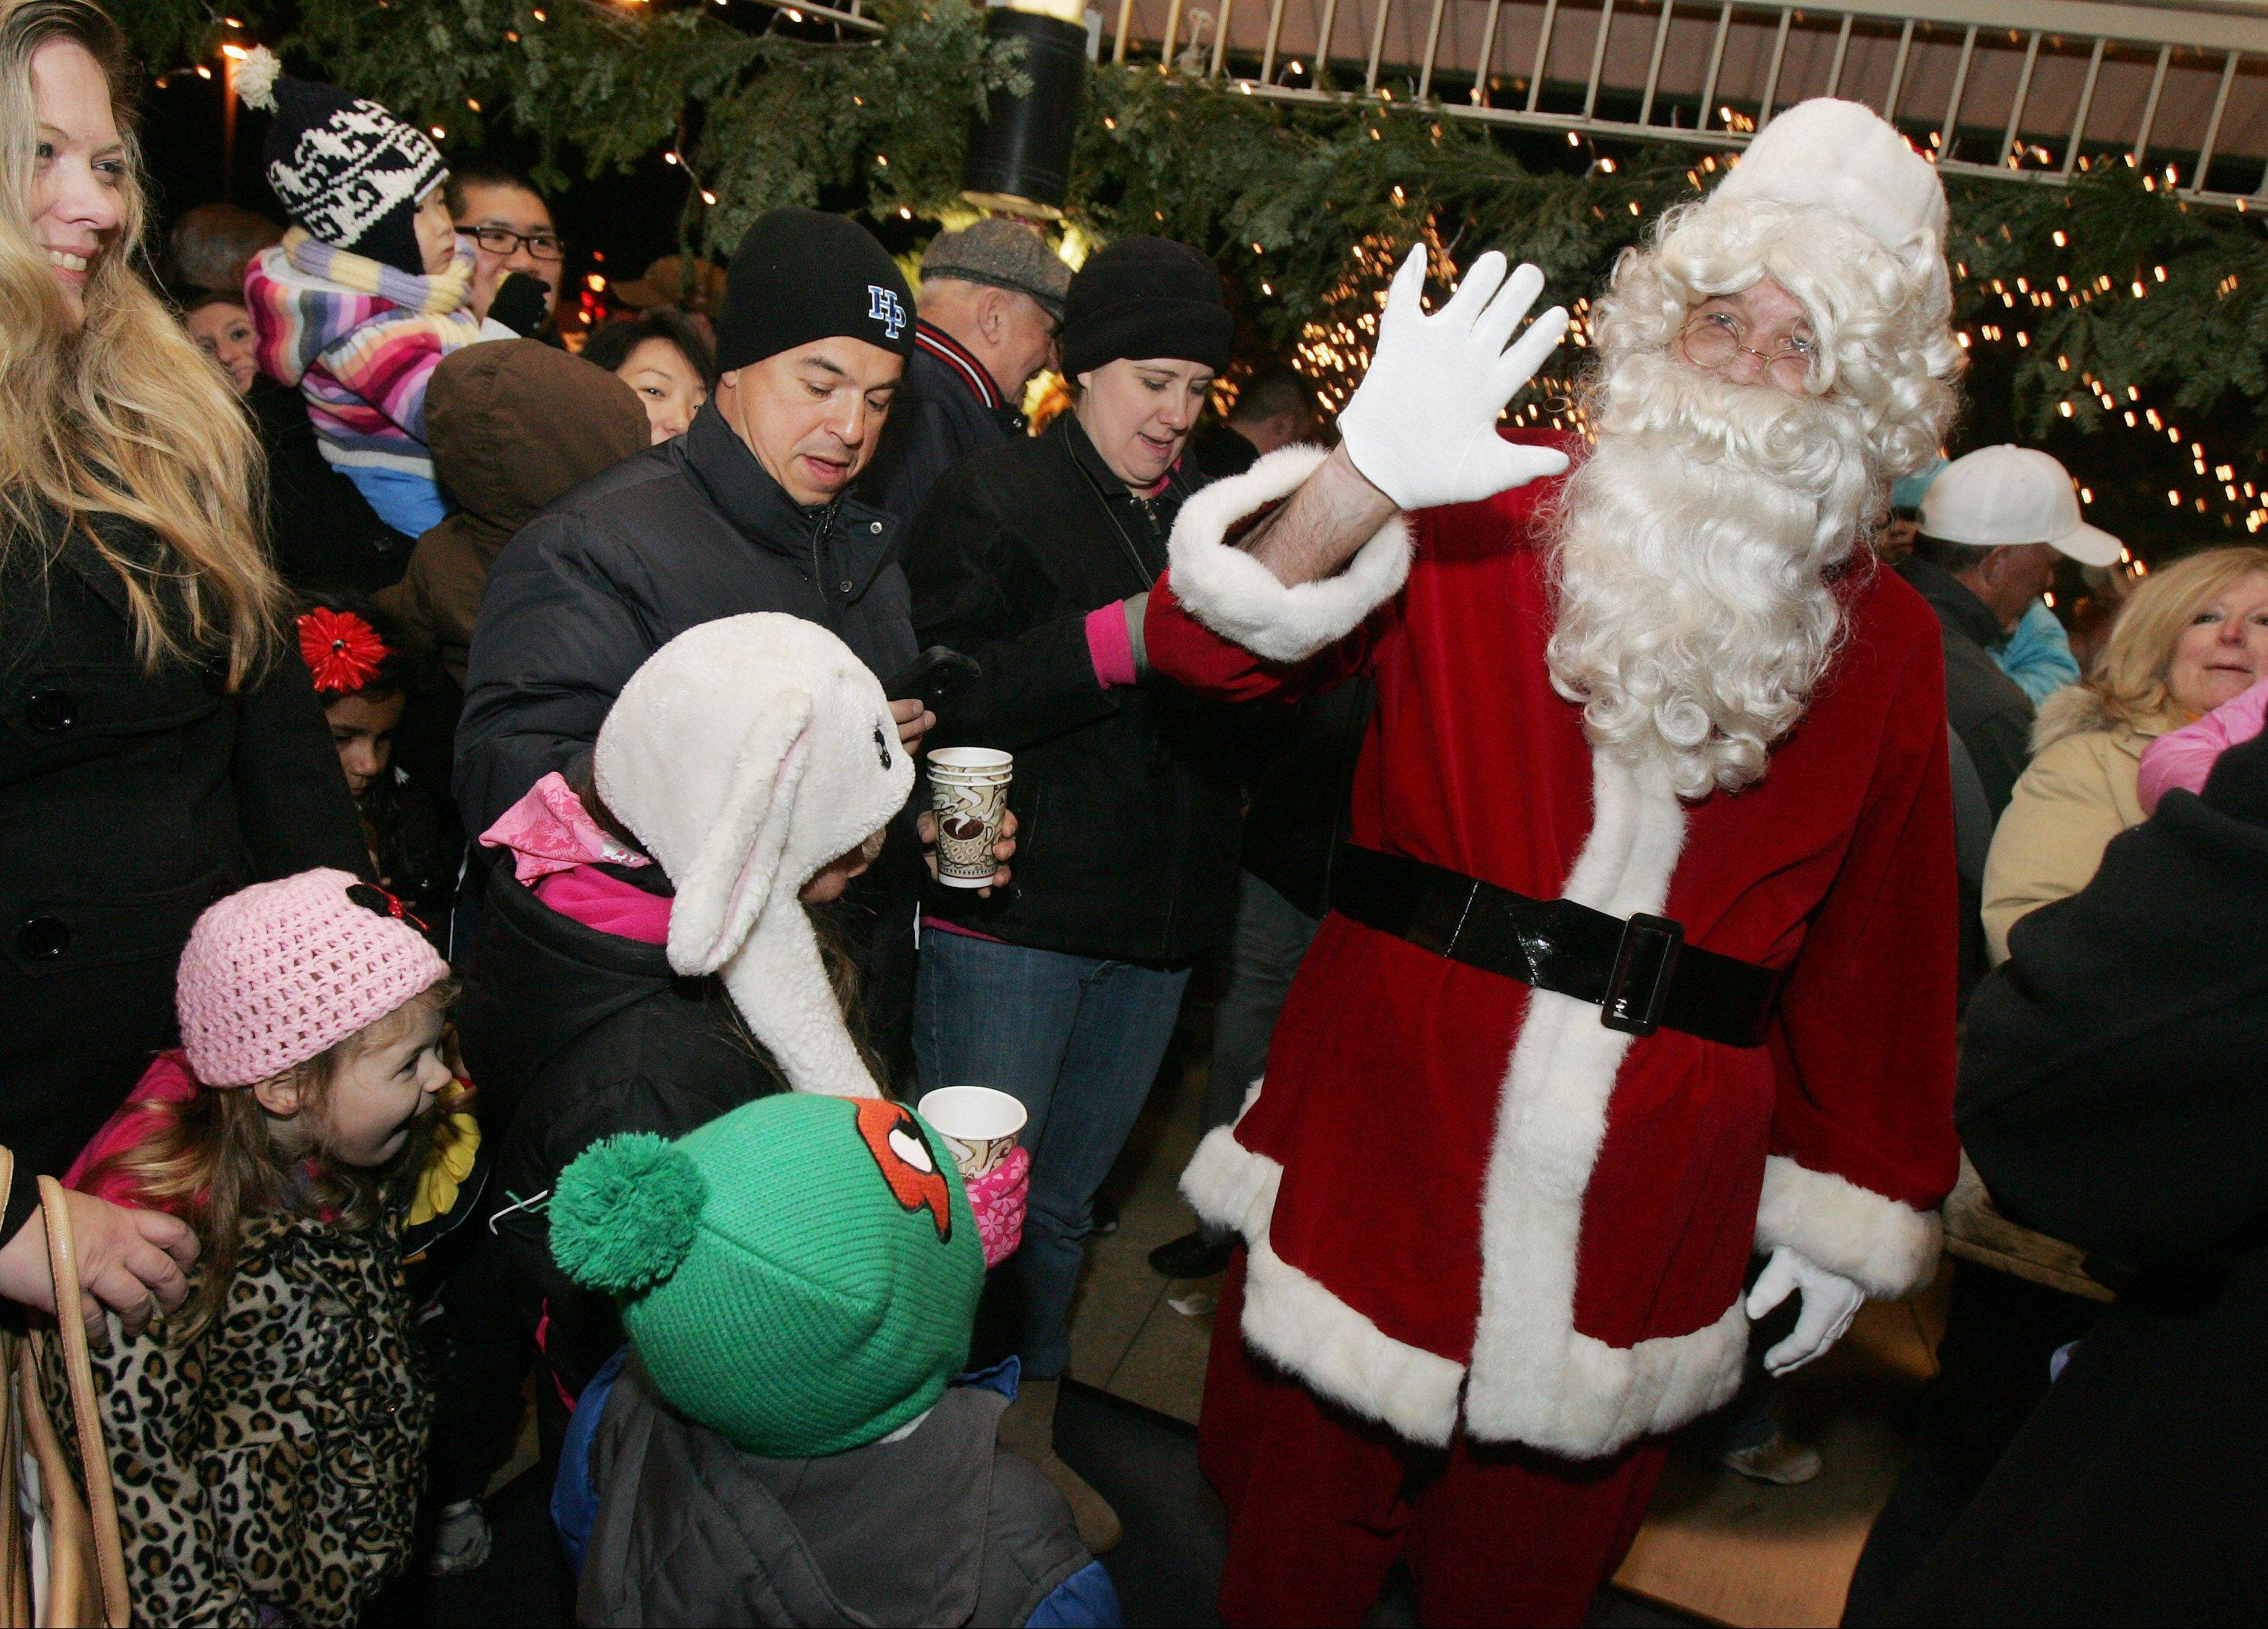 Santa Claus arrives and greets children during Wheeling's Lighting of the Lights Sunday at Friendship Park. Holiday music was performed by Wheeling High School band members and hot chocolate and cookies were provided by Market Square Restaurant.